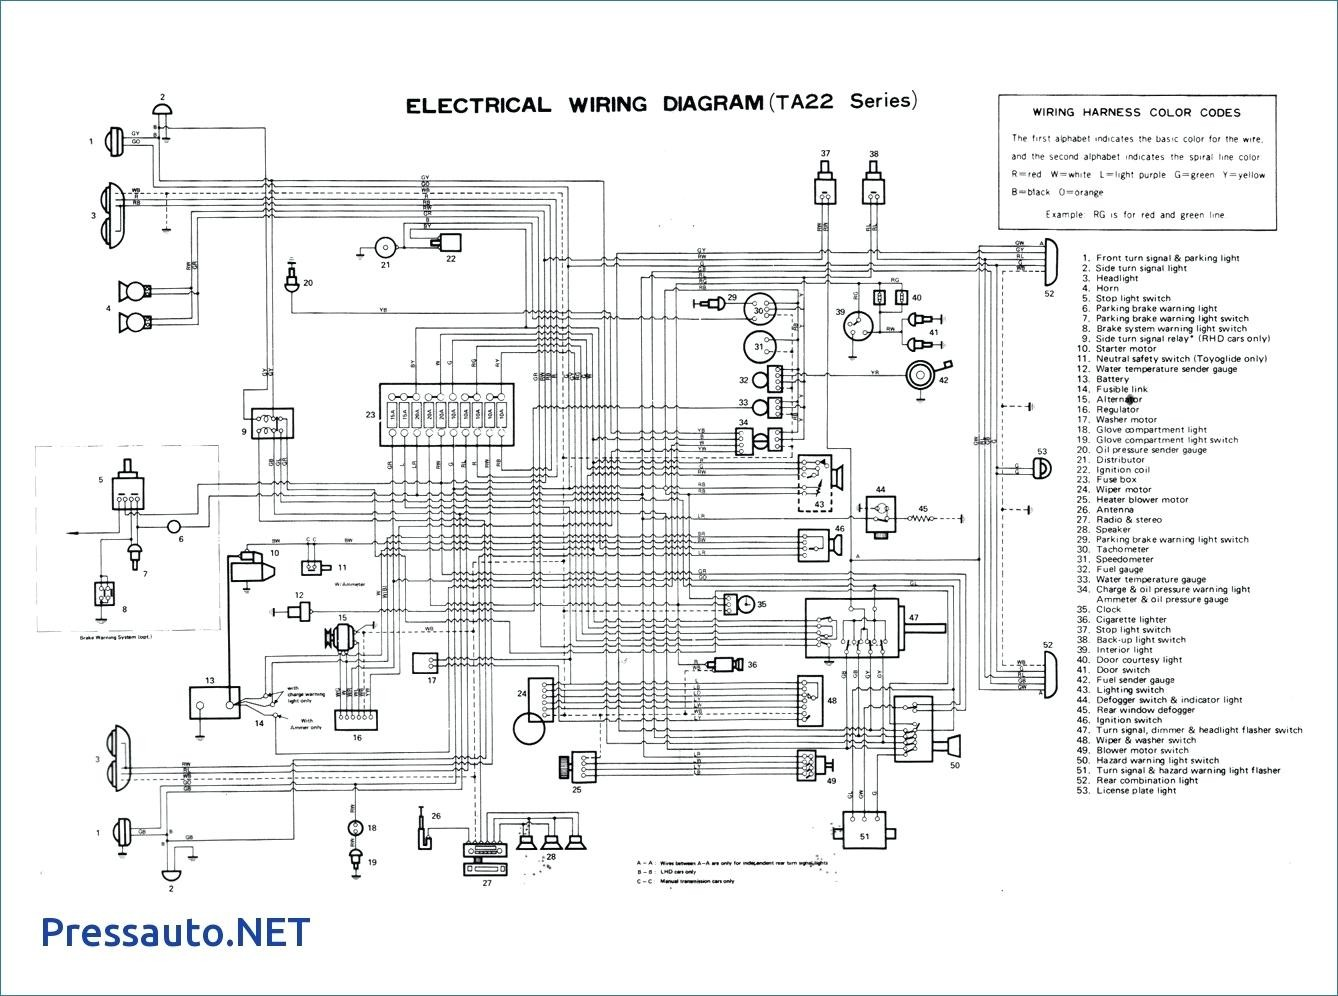 john deere stx38 wiring diagram free download black deck pto motor in